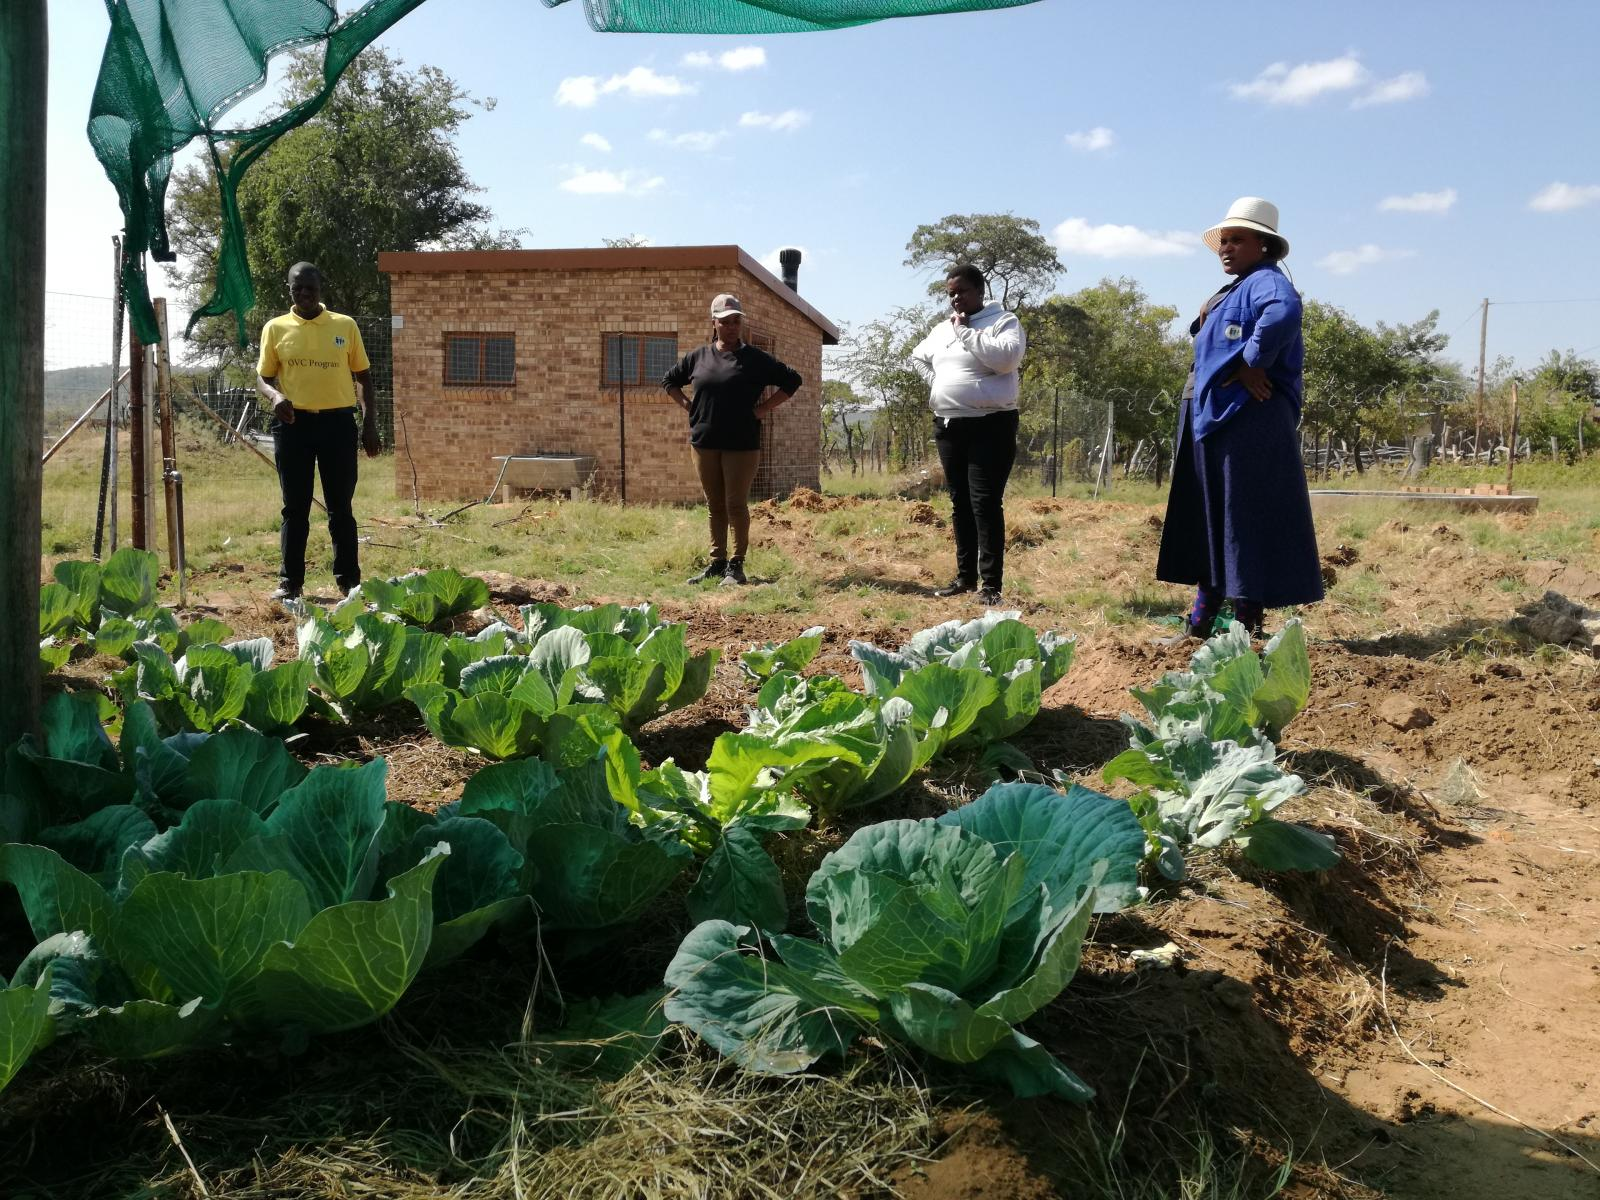 Four people stand near a small farm plot filled with cabbage plants.